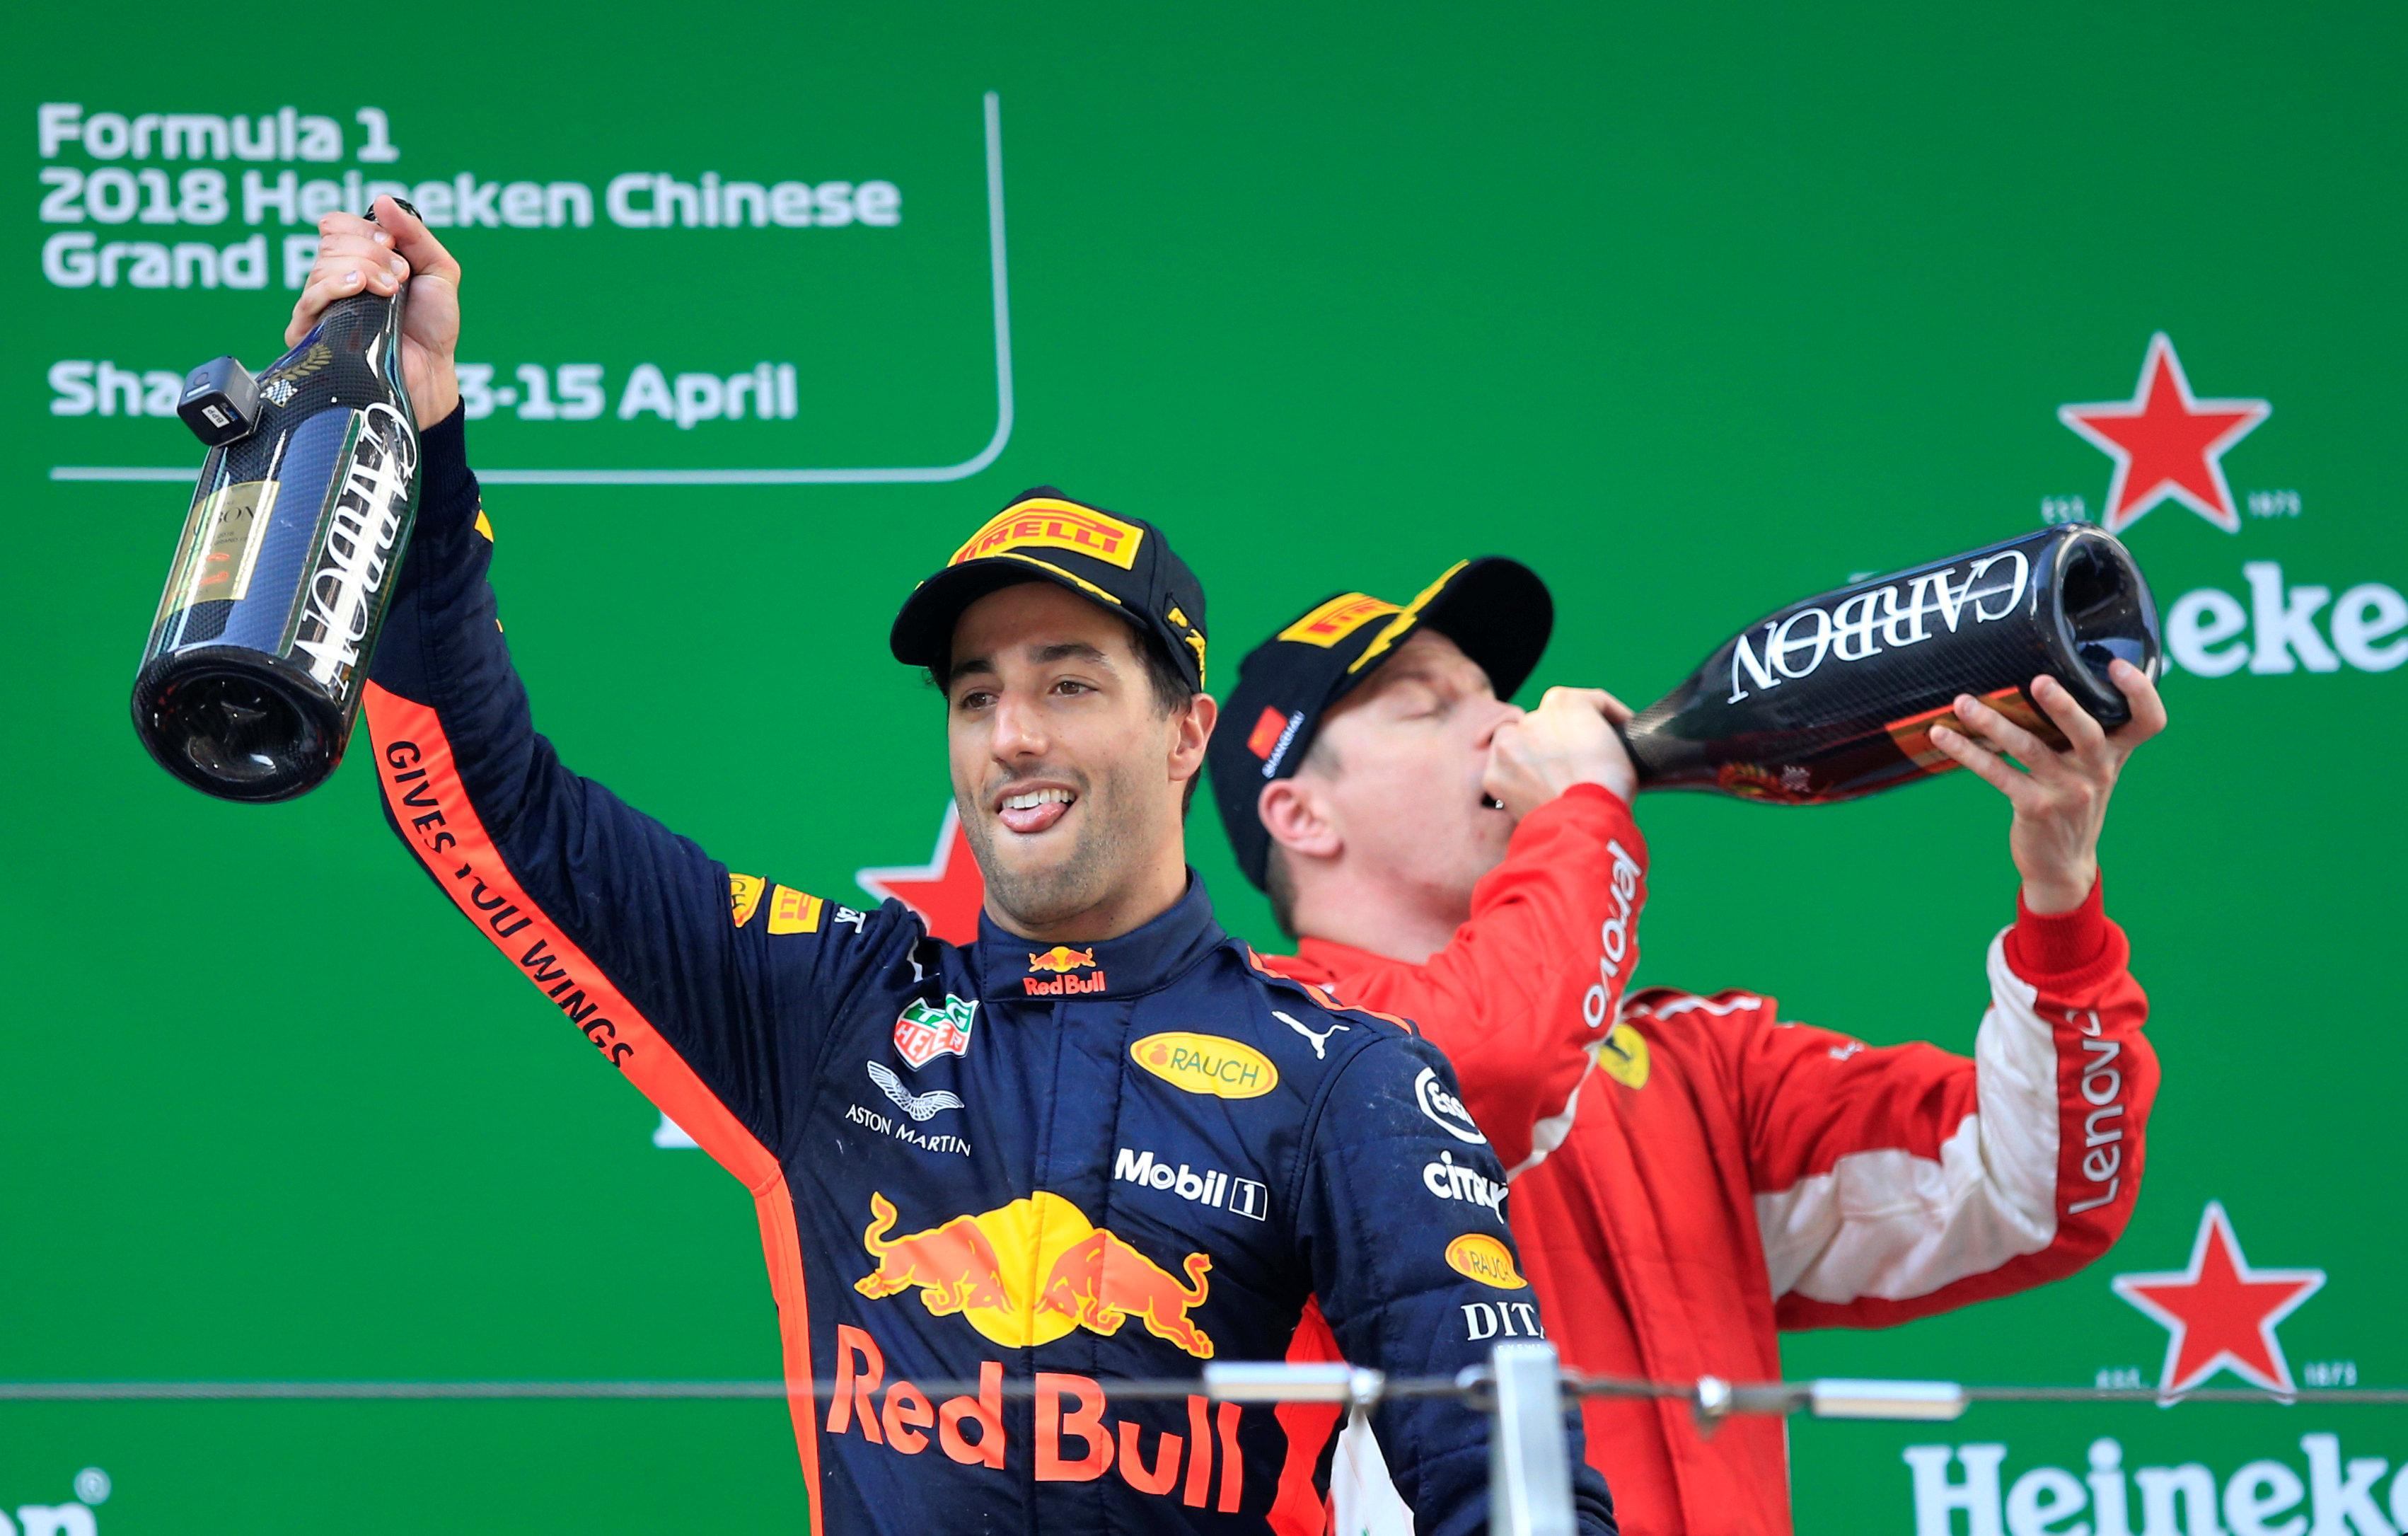 Daniel Ricciardo with Kimi Raikkonen celebrate finishing on podium in Shanghai